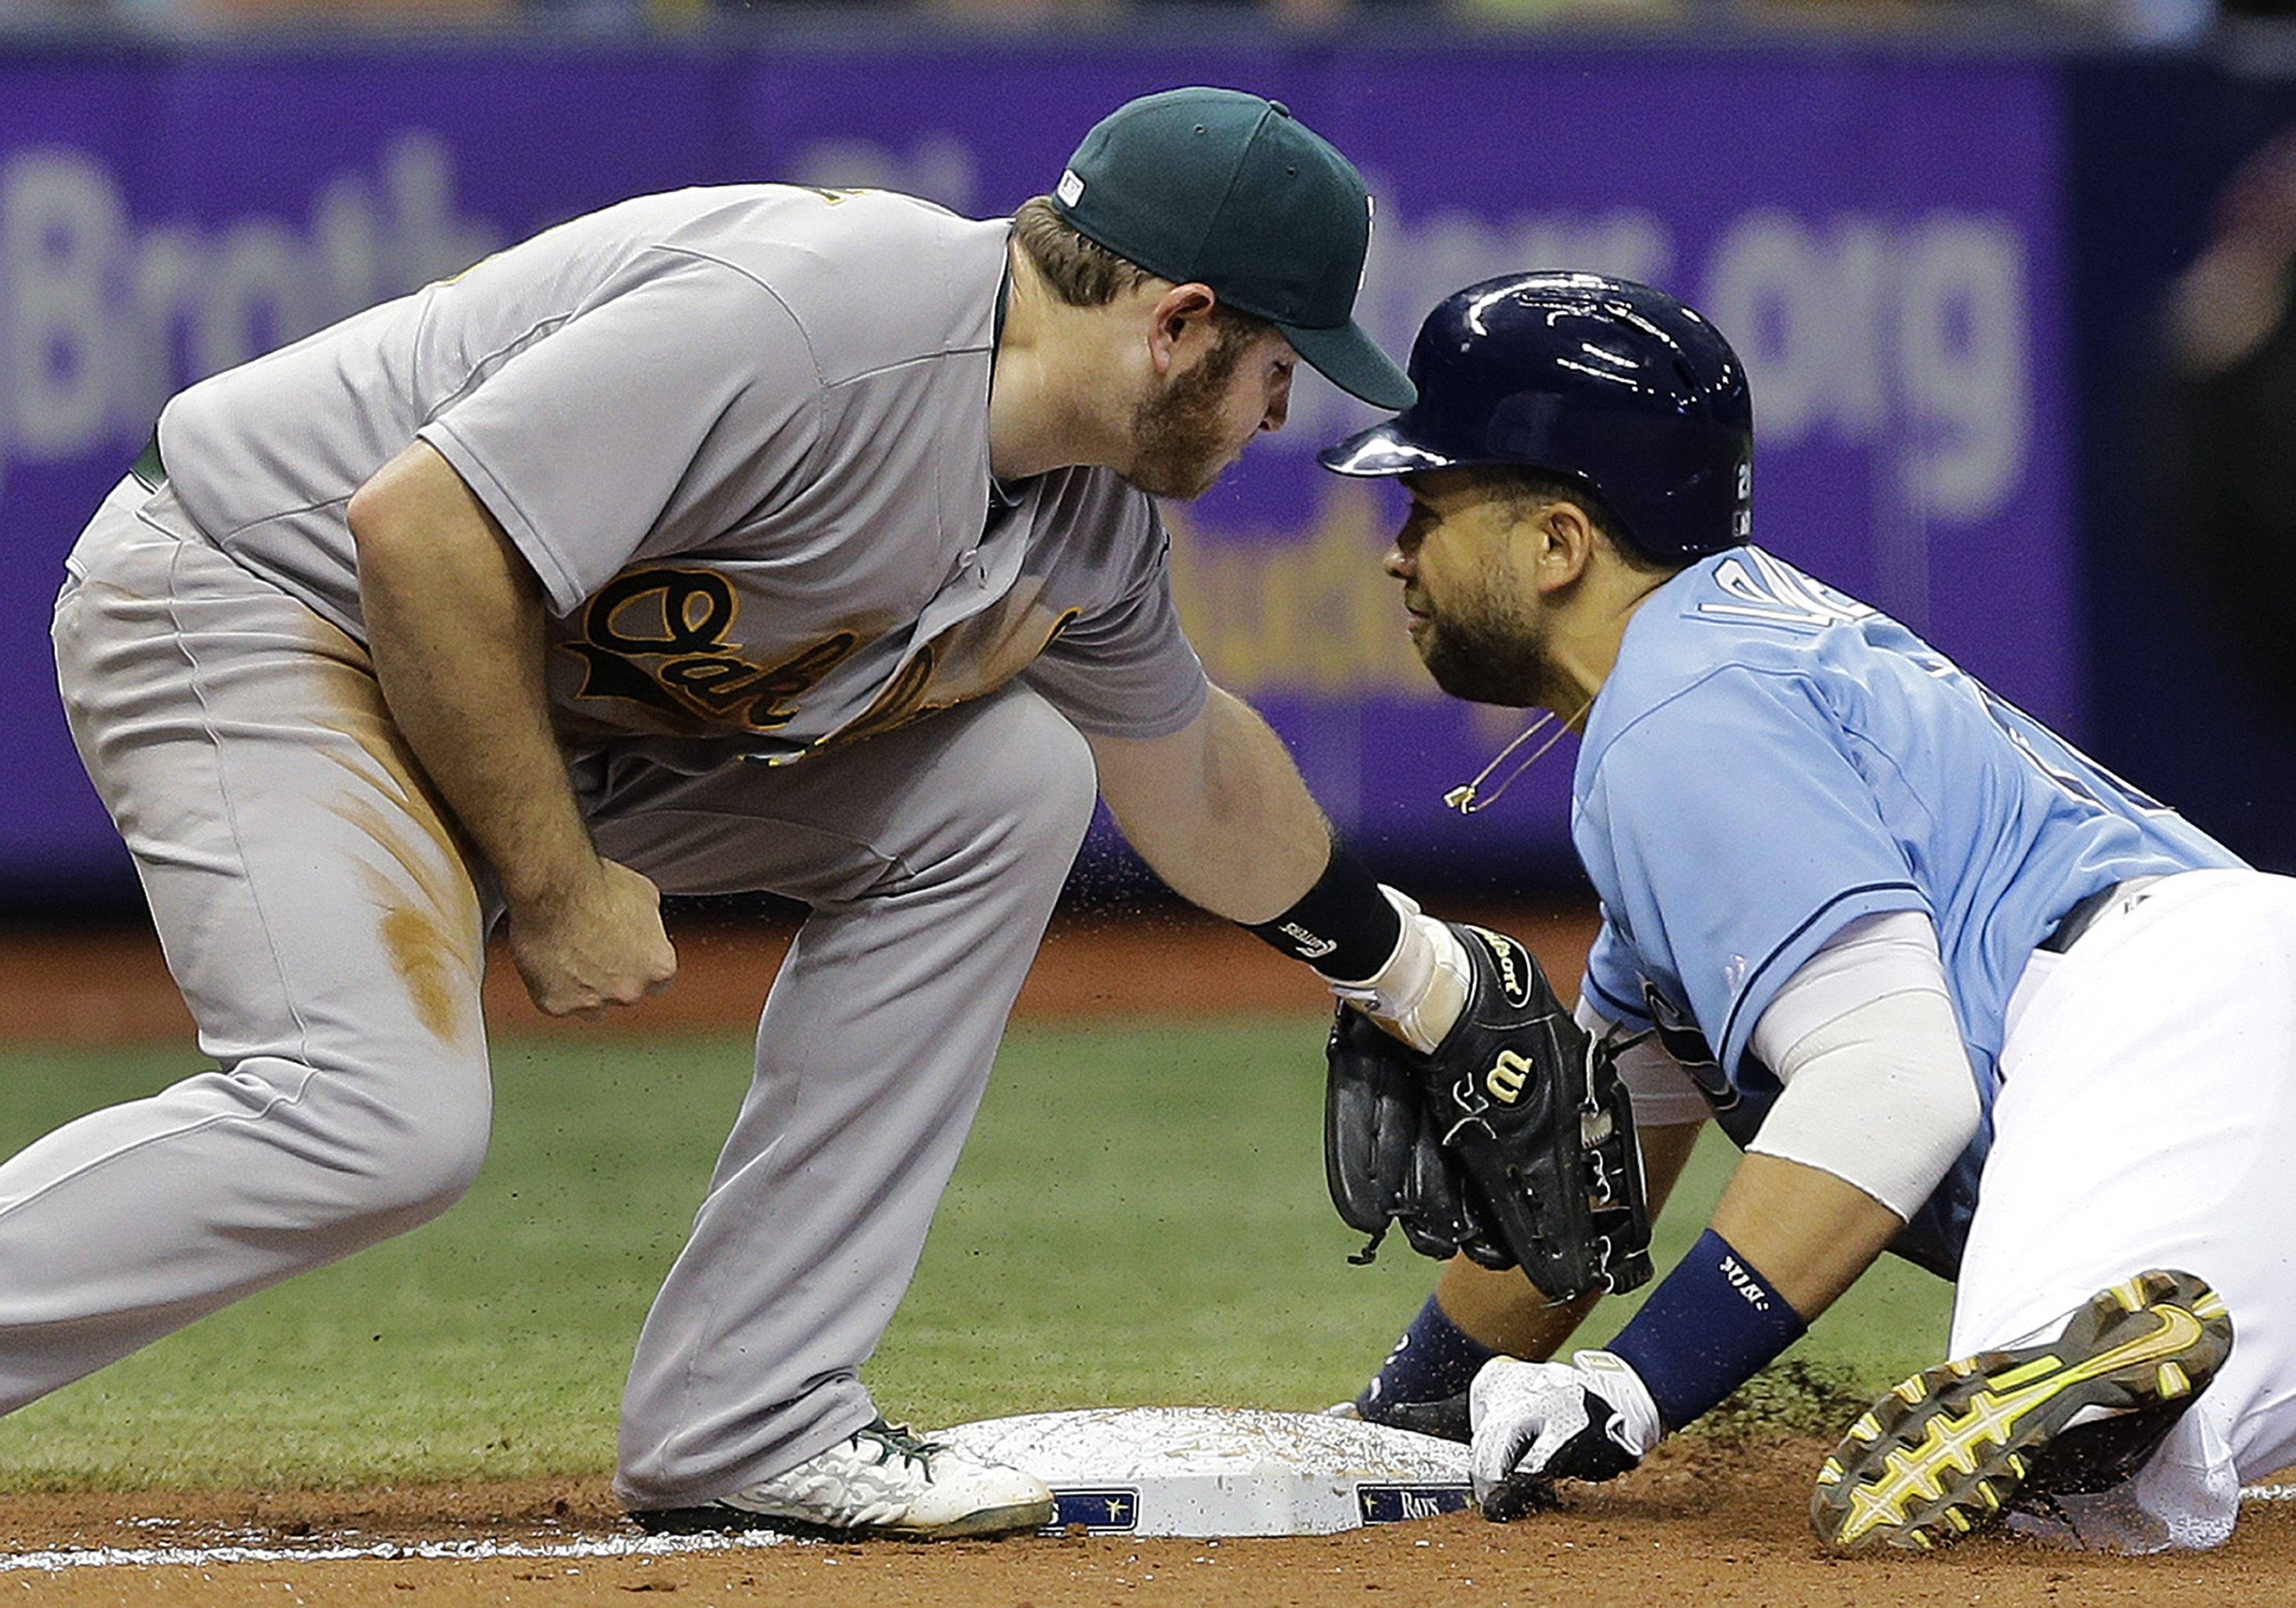 Tampa Bay Rays' James Loney, right, steals third base ahead of the tag by Oakland Athletics third baseman Max Muncy during the eighth inning of a baseball game Sunday, May 24, 2015, in St. Petersburg, Fla.  The A's won the game 7-2. (AP Photo/Chris O'Mear